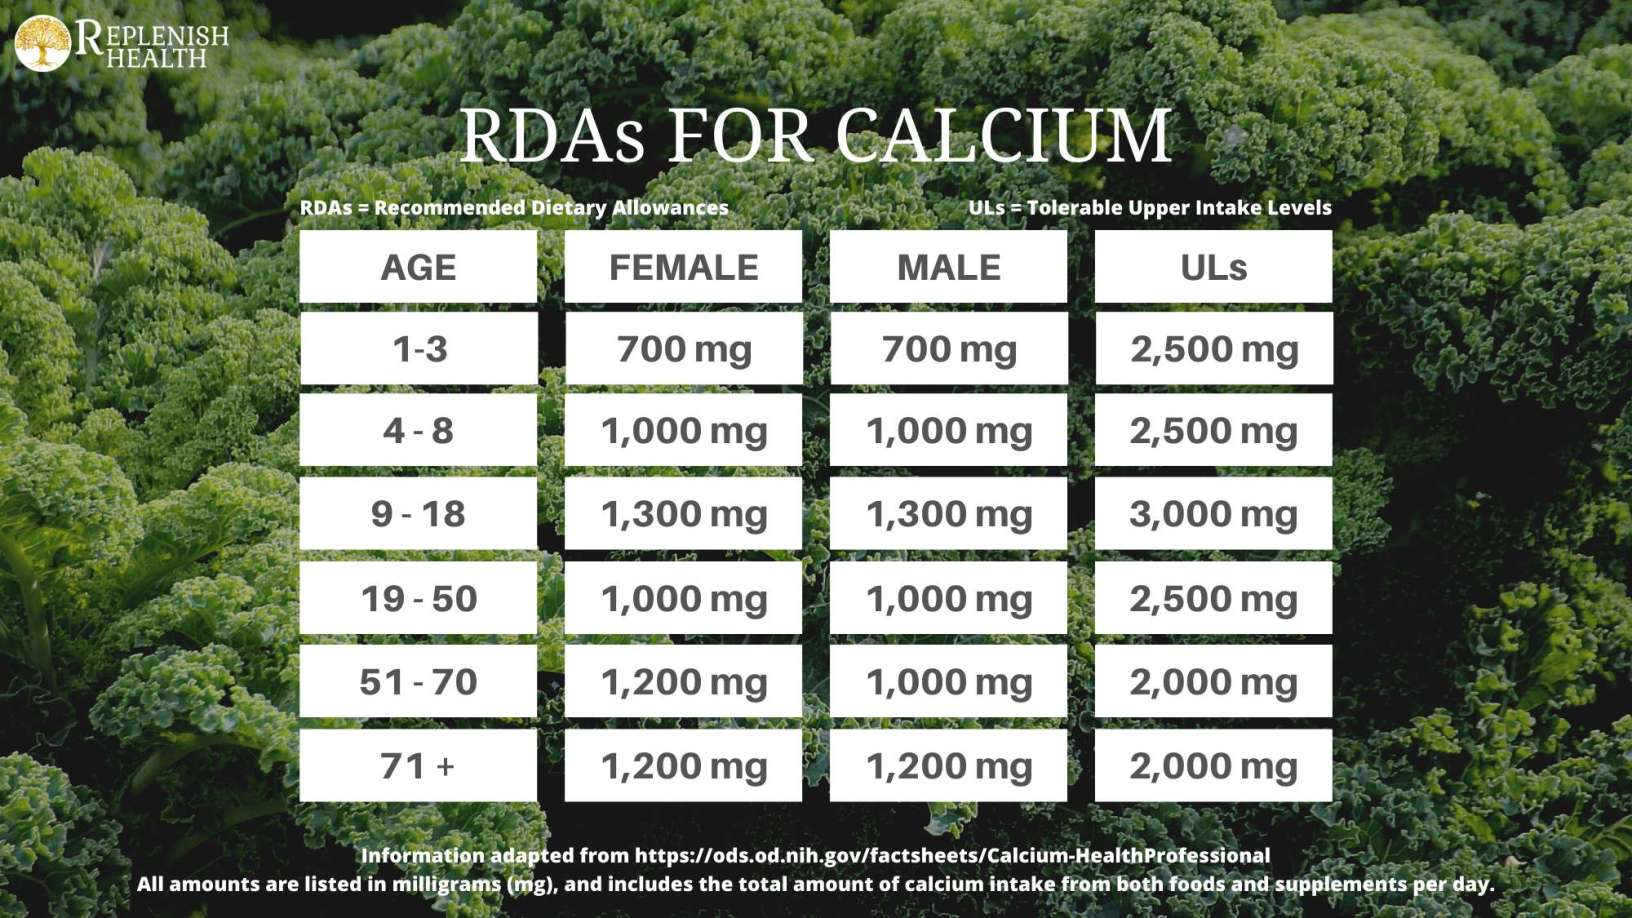 An image of the RDA and UL for calcium